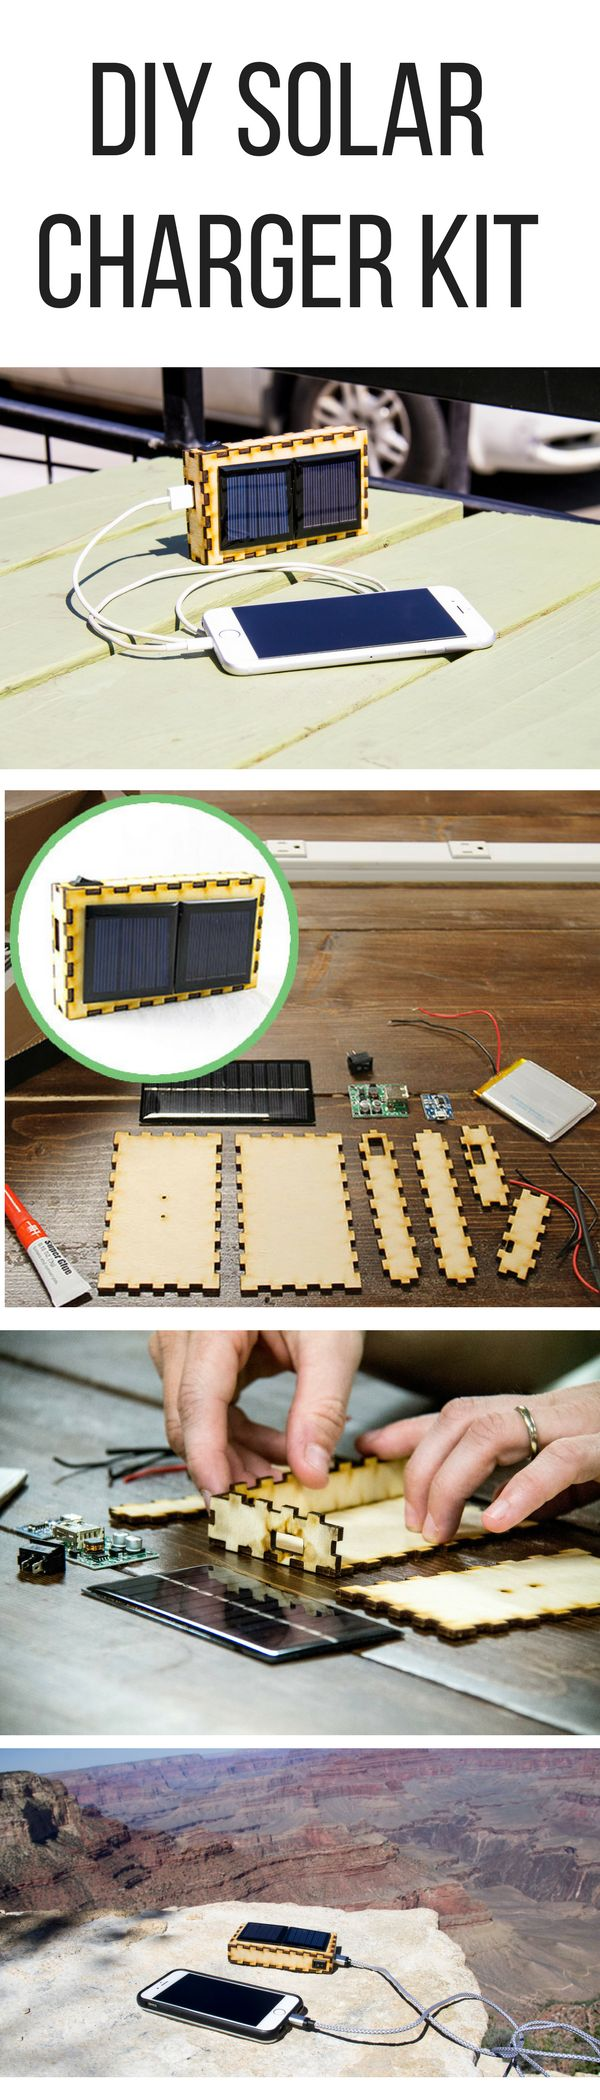 Create this DIY solar charger project for outdoor adventures! This is a unique DIY project perfect afternoon activity or gift! Great for a makerspace for kids or adults of any age.